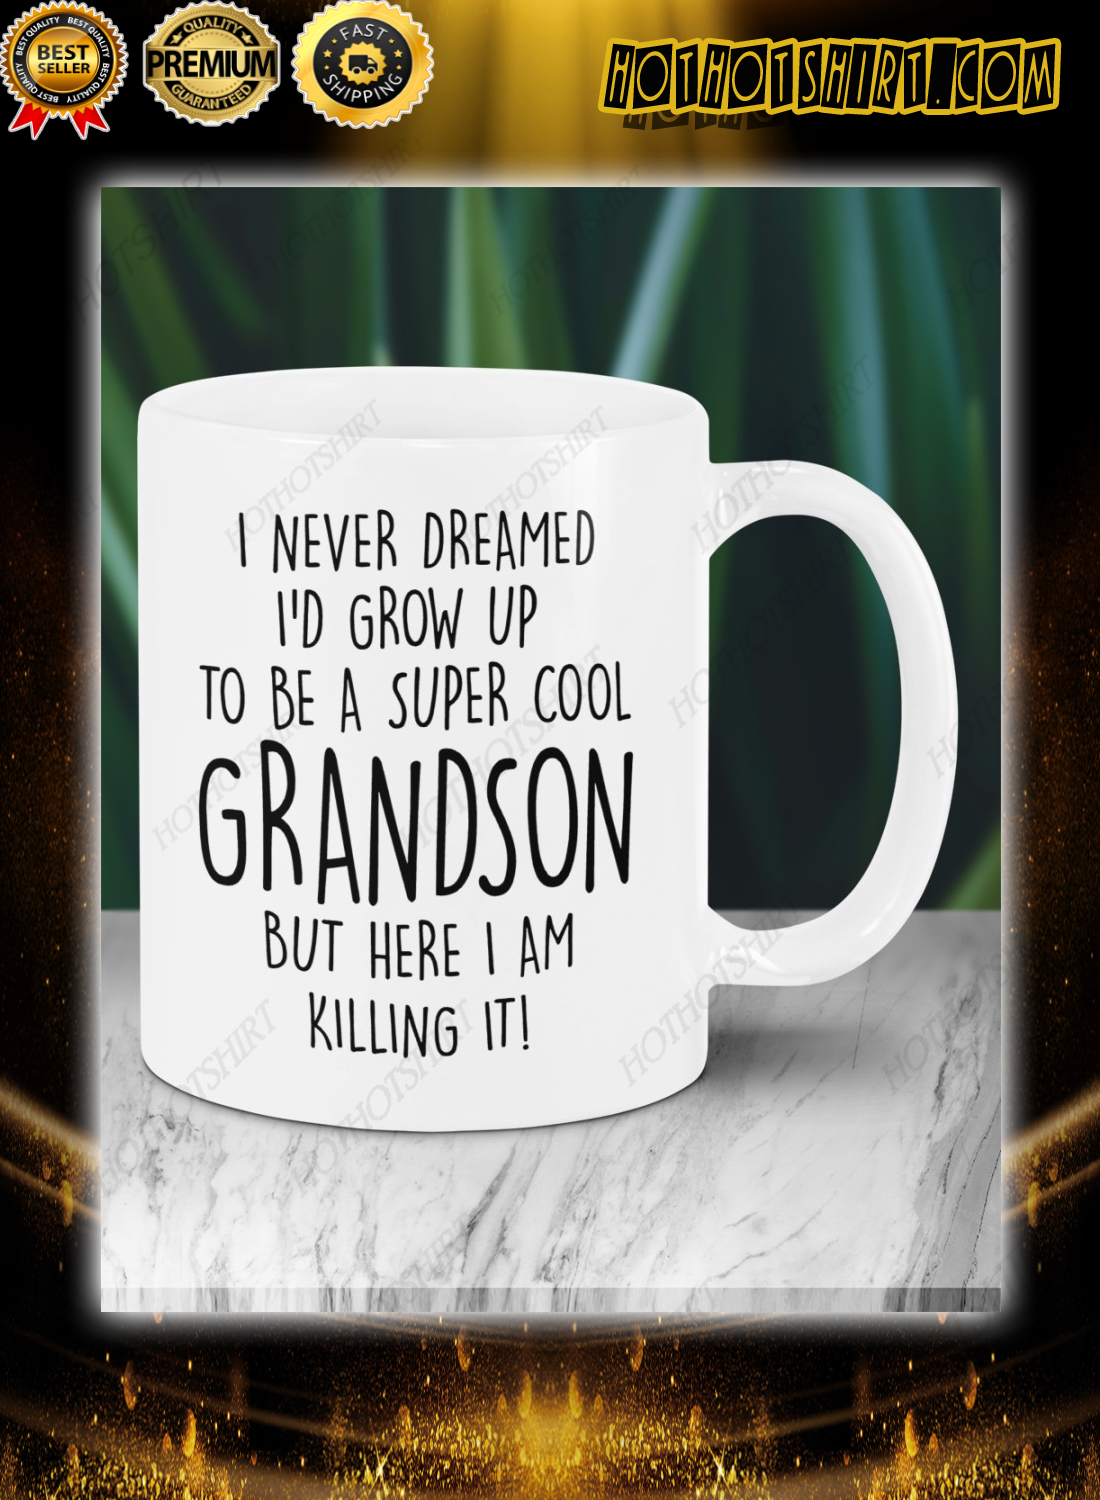 I never dreamed i'd grow up to be cool grandson Mugs